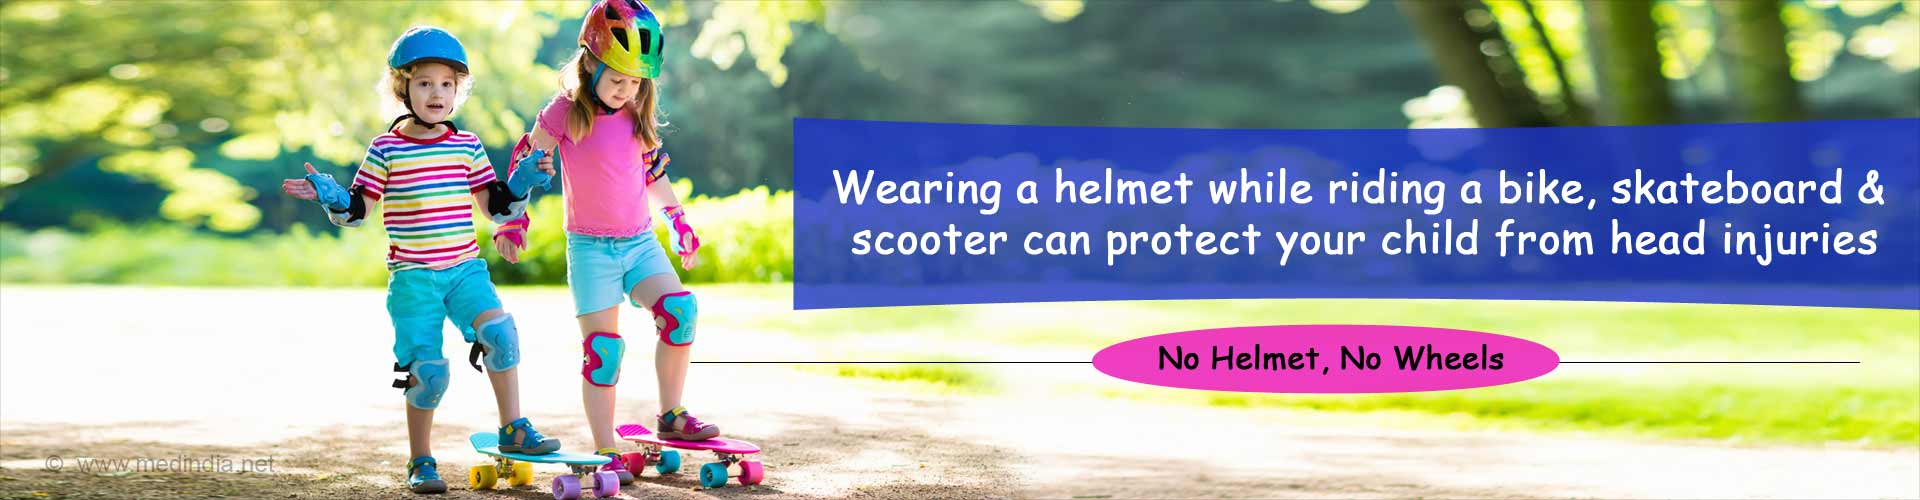 Wearing a Helmet When on Wheels Can Protect Kids from Head Injuries